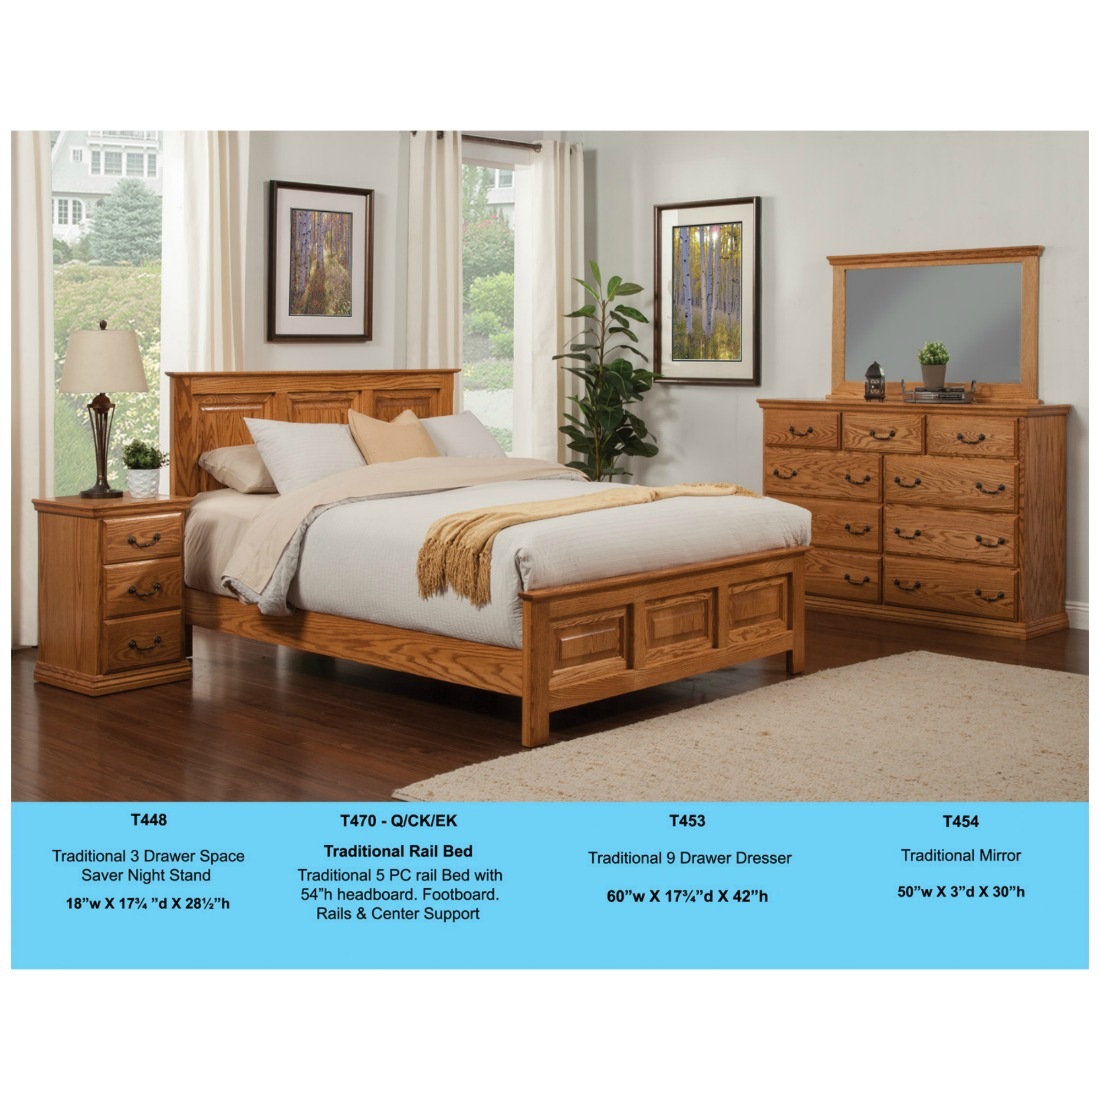 5 Piece Traditional Rail Bedroom Set By Odc Stewart Roth Furniture